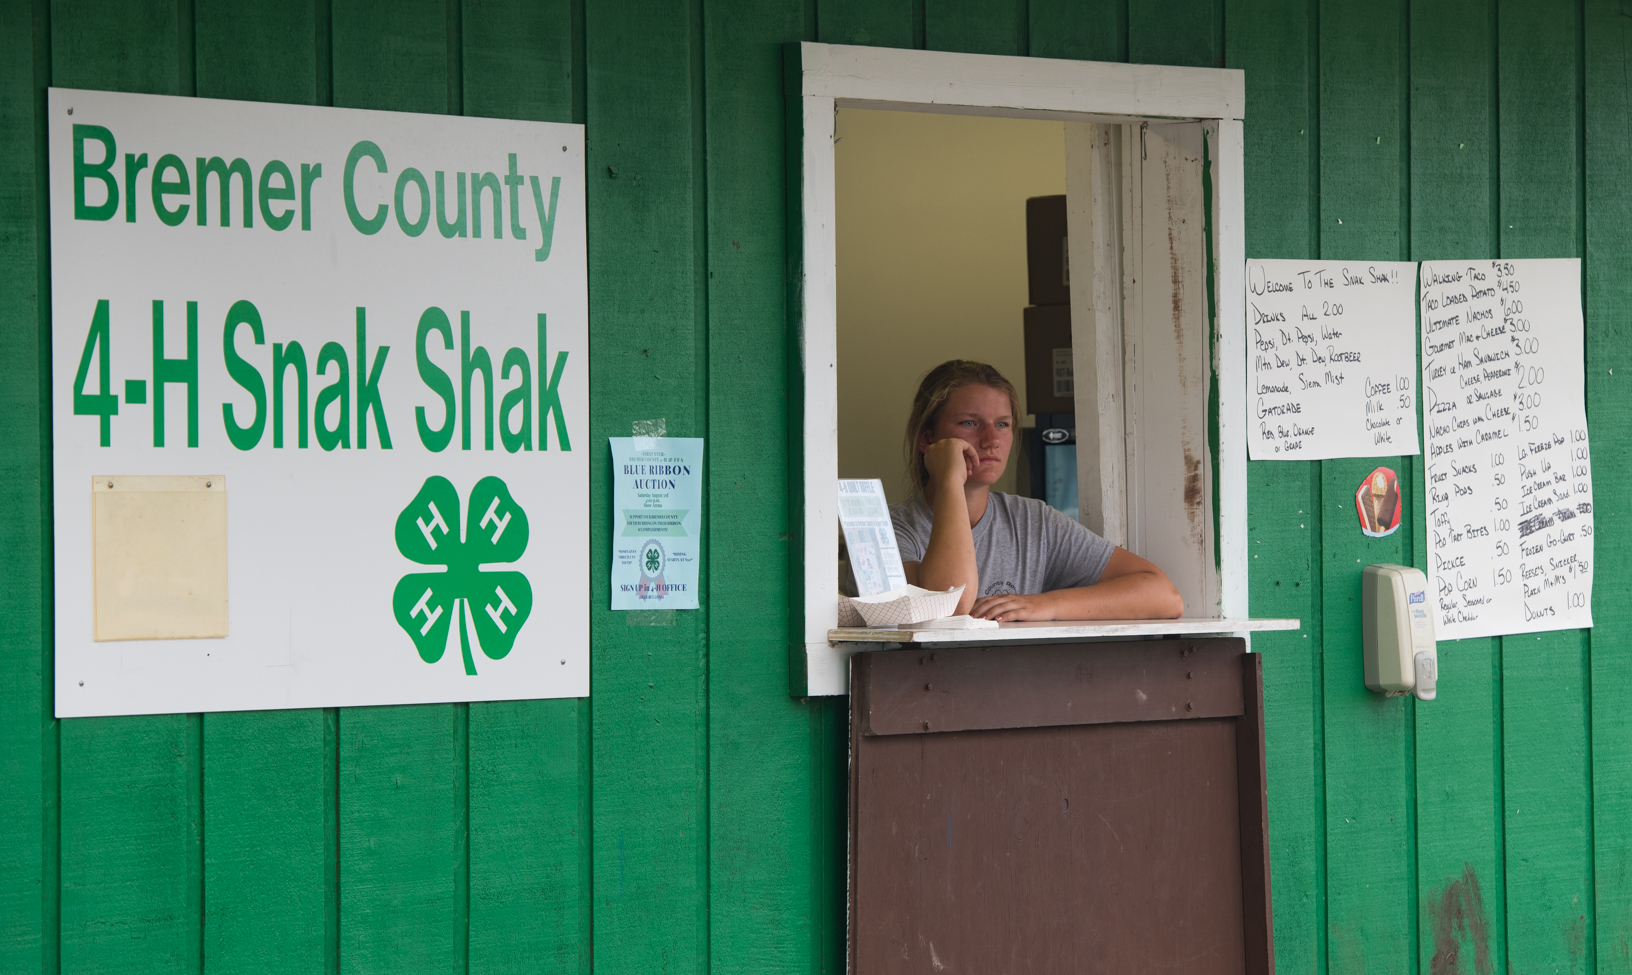 Taylor Flaig waits for customers while manning the 4-H snack shack at the Bremer County Fair. Photo credit: Joseph L. Murphy, Iowa Soybean Association